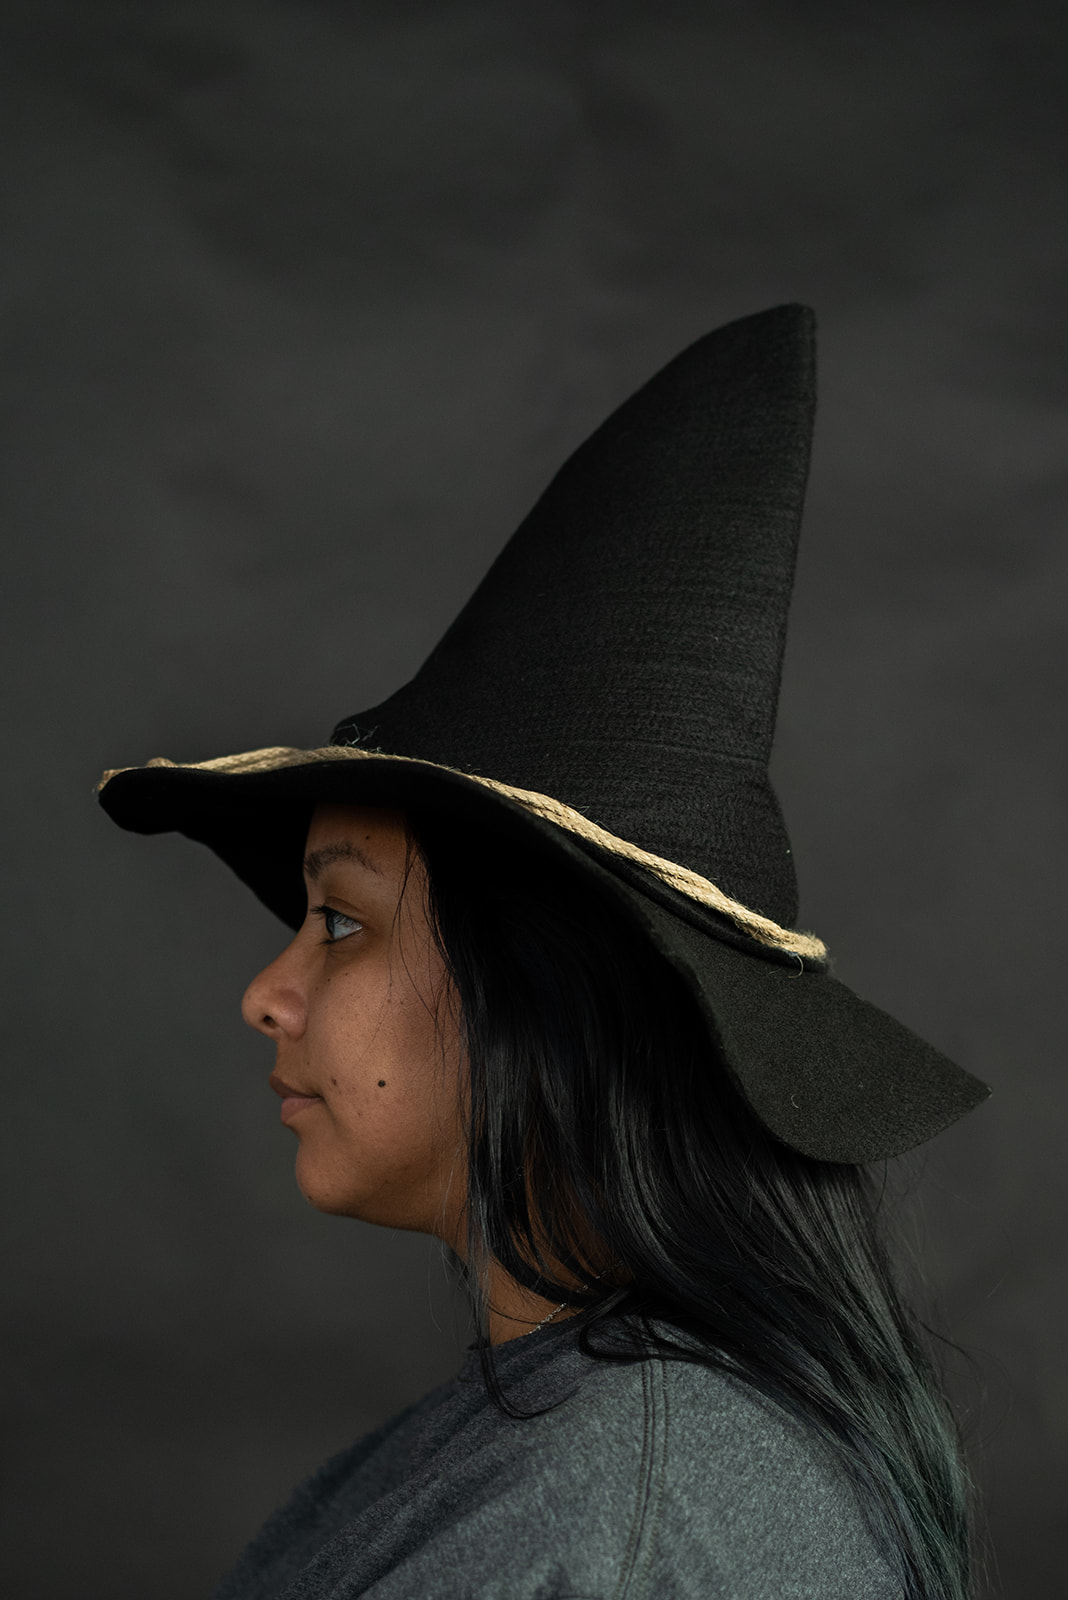 thumbnail 3 - Adult Scarecrow Hat Deluxe Felt Oktoberfest Wizard Witch Hillbilly Hat Costume